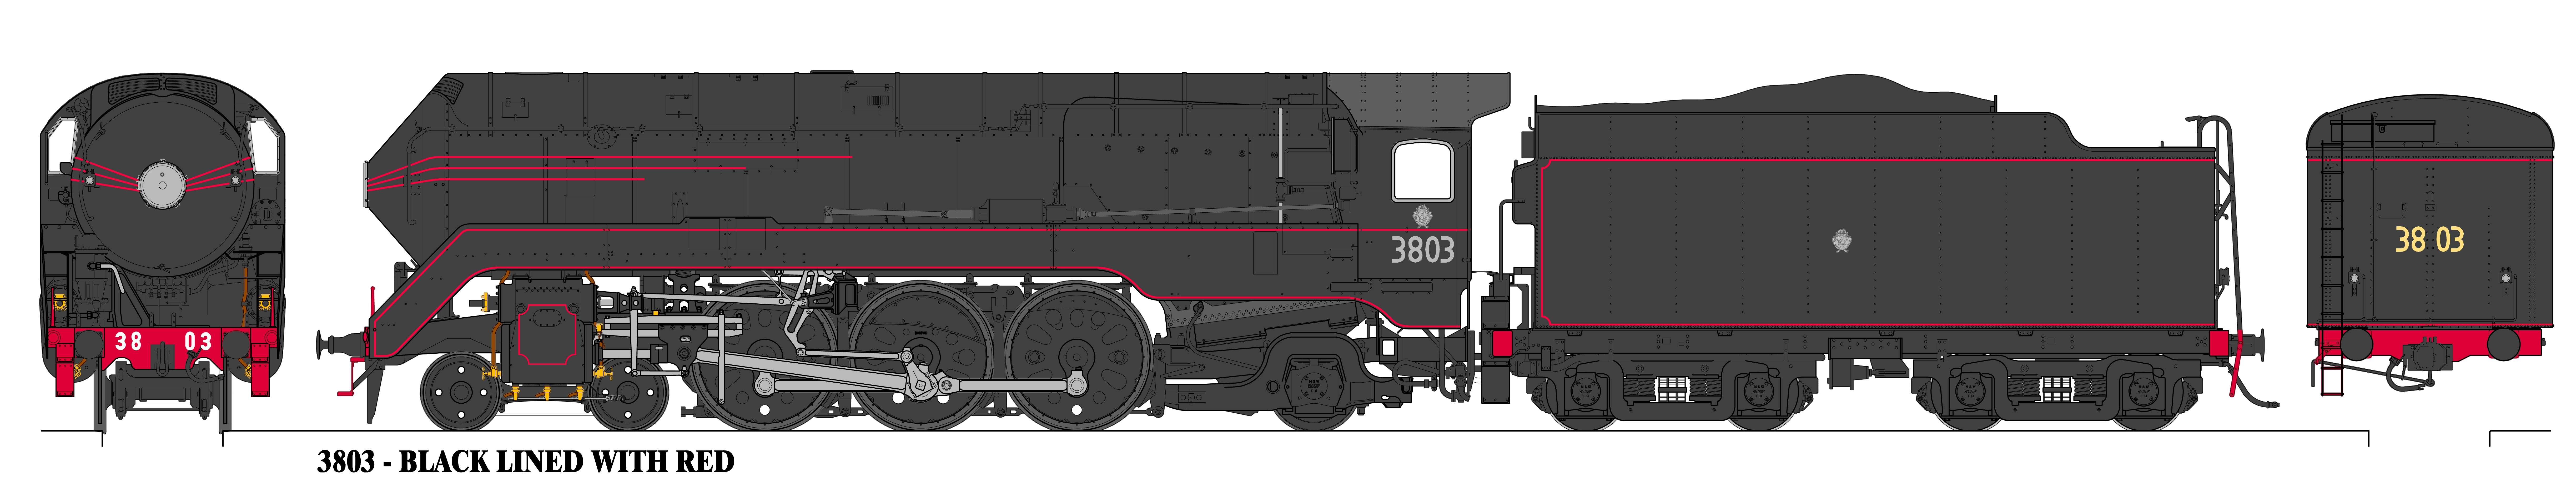 Accucraft Argyle C803 Streamlined Black with Red Lining Locomotive